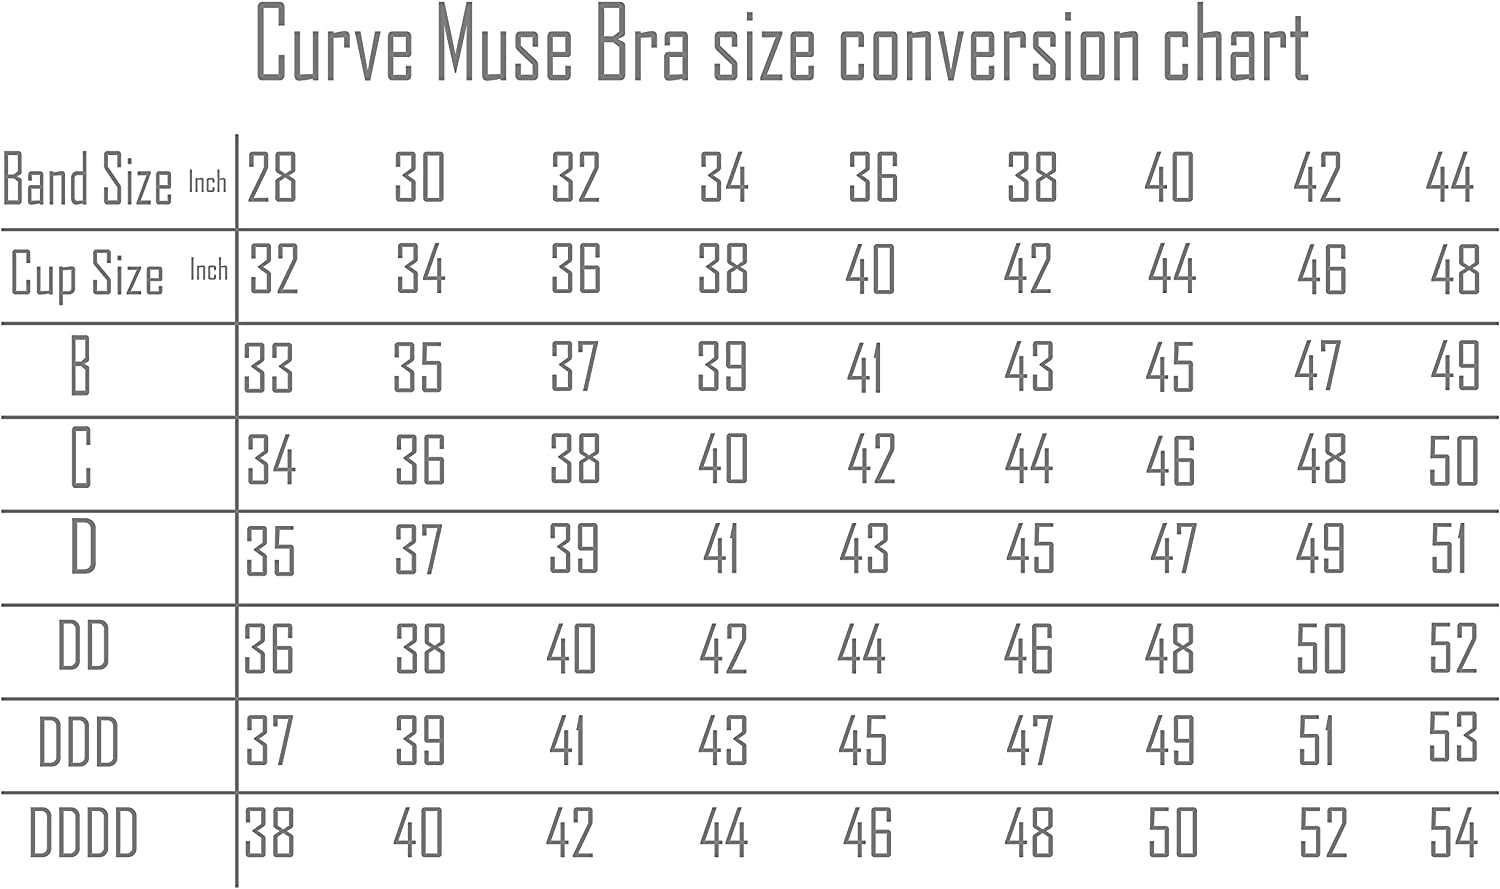 Curve Muse Womens Plus Size Minimizer Unlined Wirefree Lace Full Coverage Bras-2Pack-STARLIGHT Blue,Pink DOGWOOD-36DDD